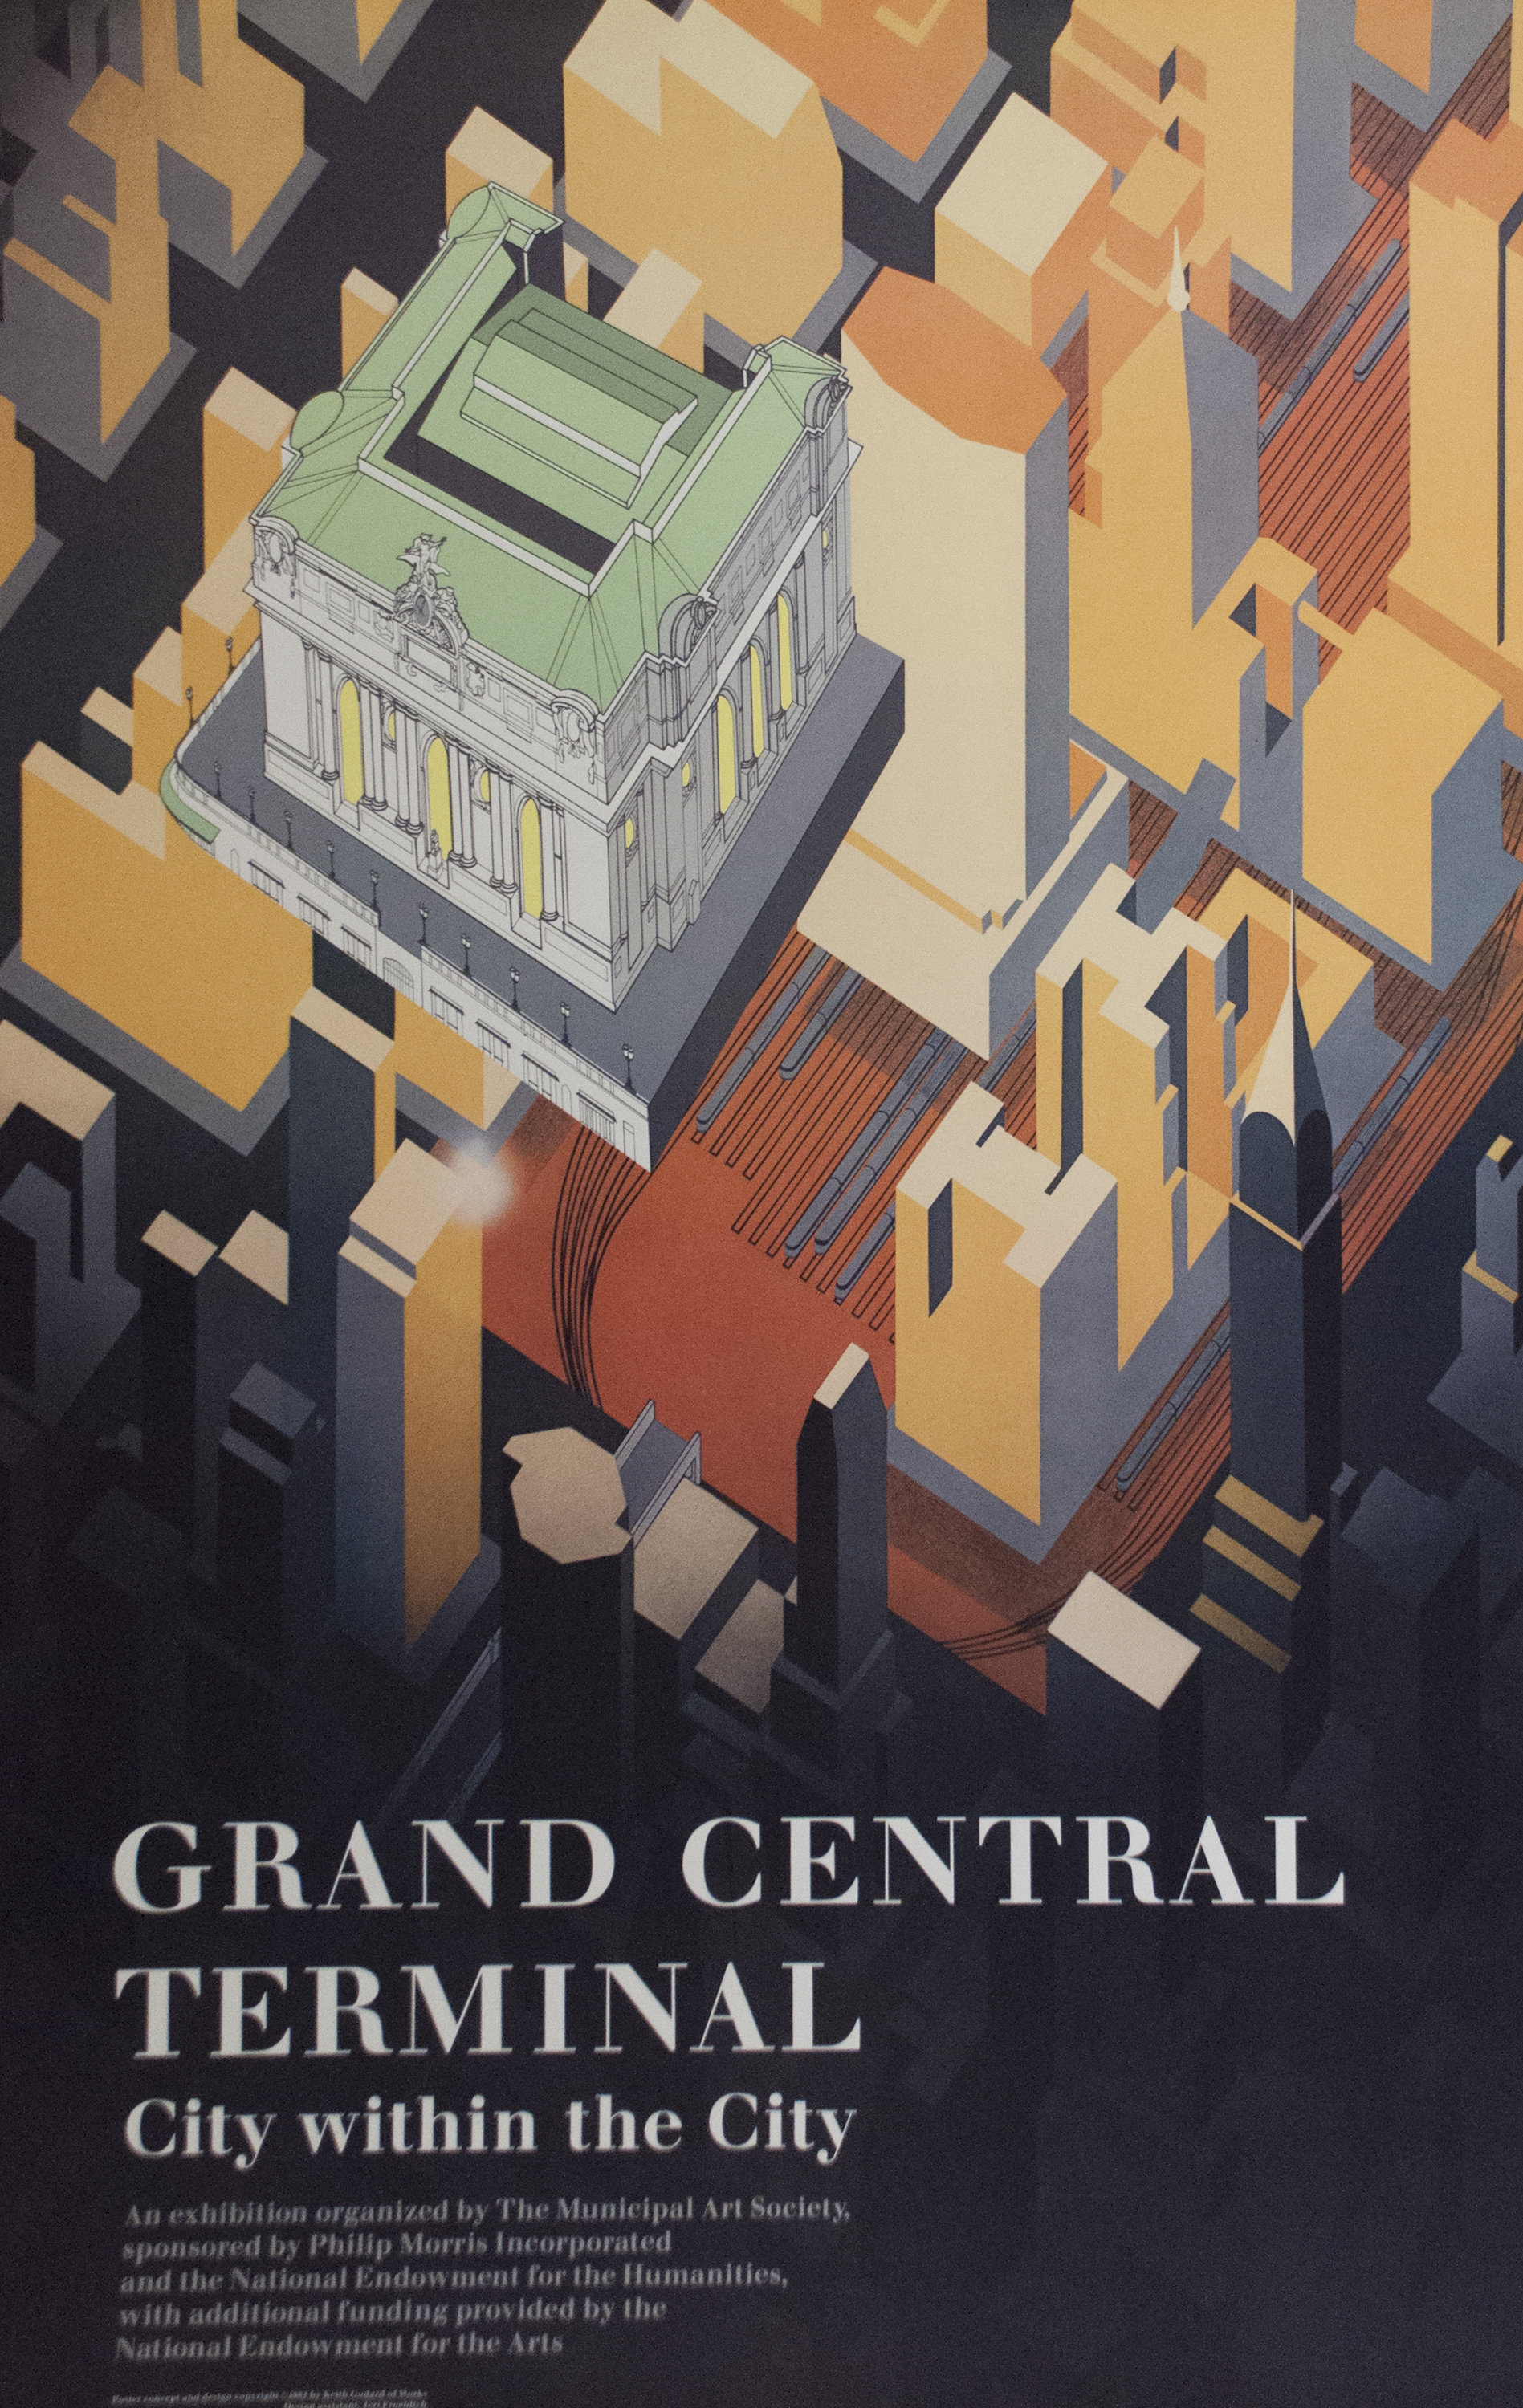 Color illustration of an aerial view of the Grand Central Terminal in an abstract cityscape.